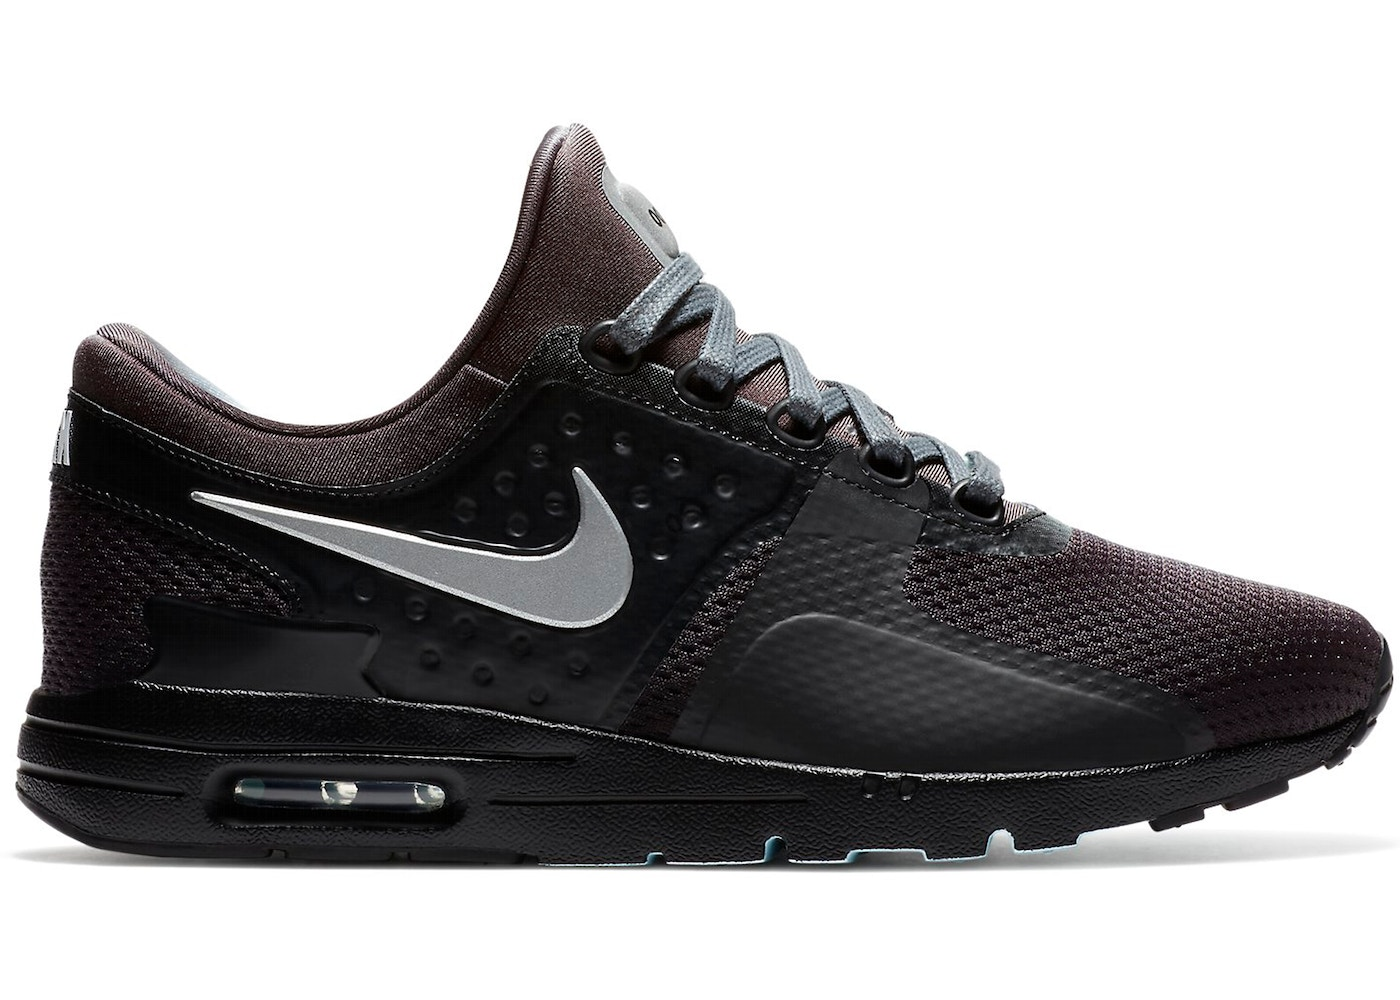 on sale d7e24 15d46 Nike Air Max 0 Shoes - Price Premium